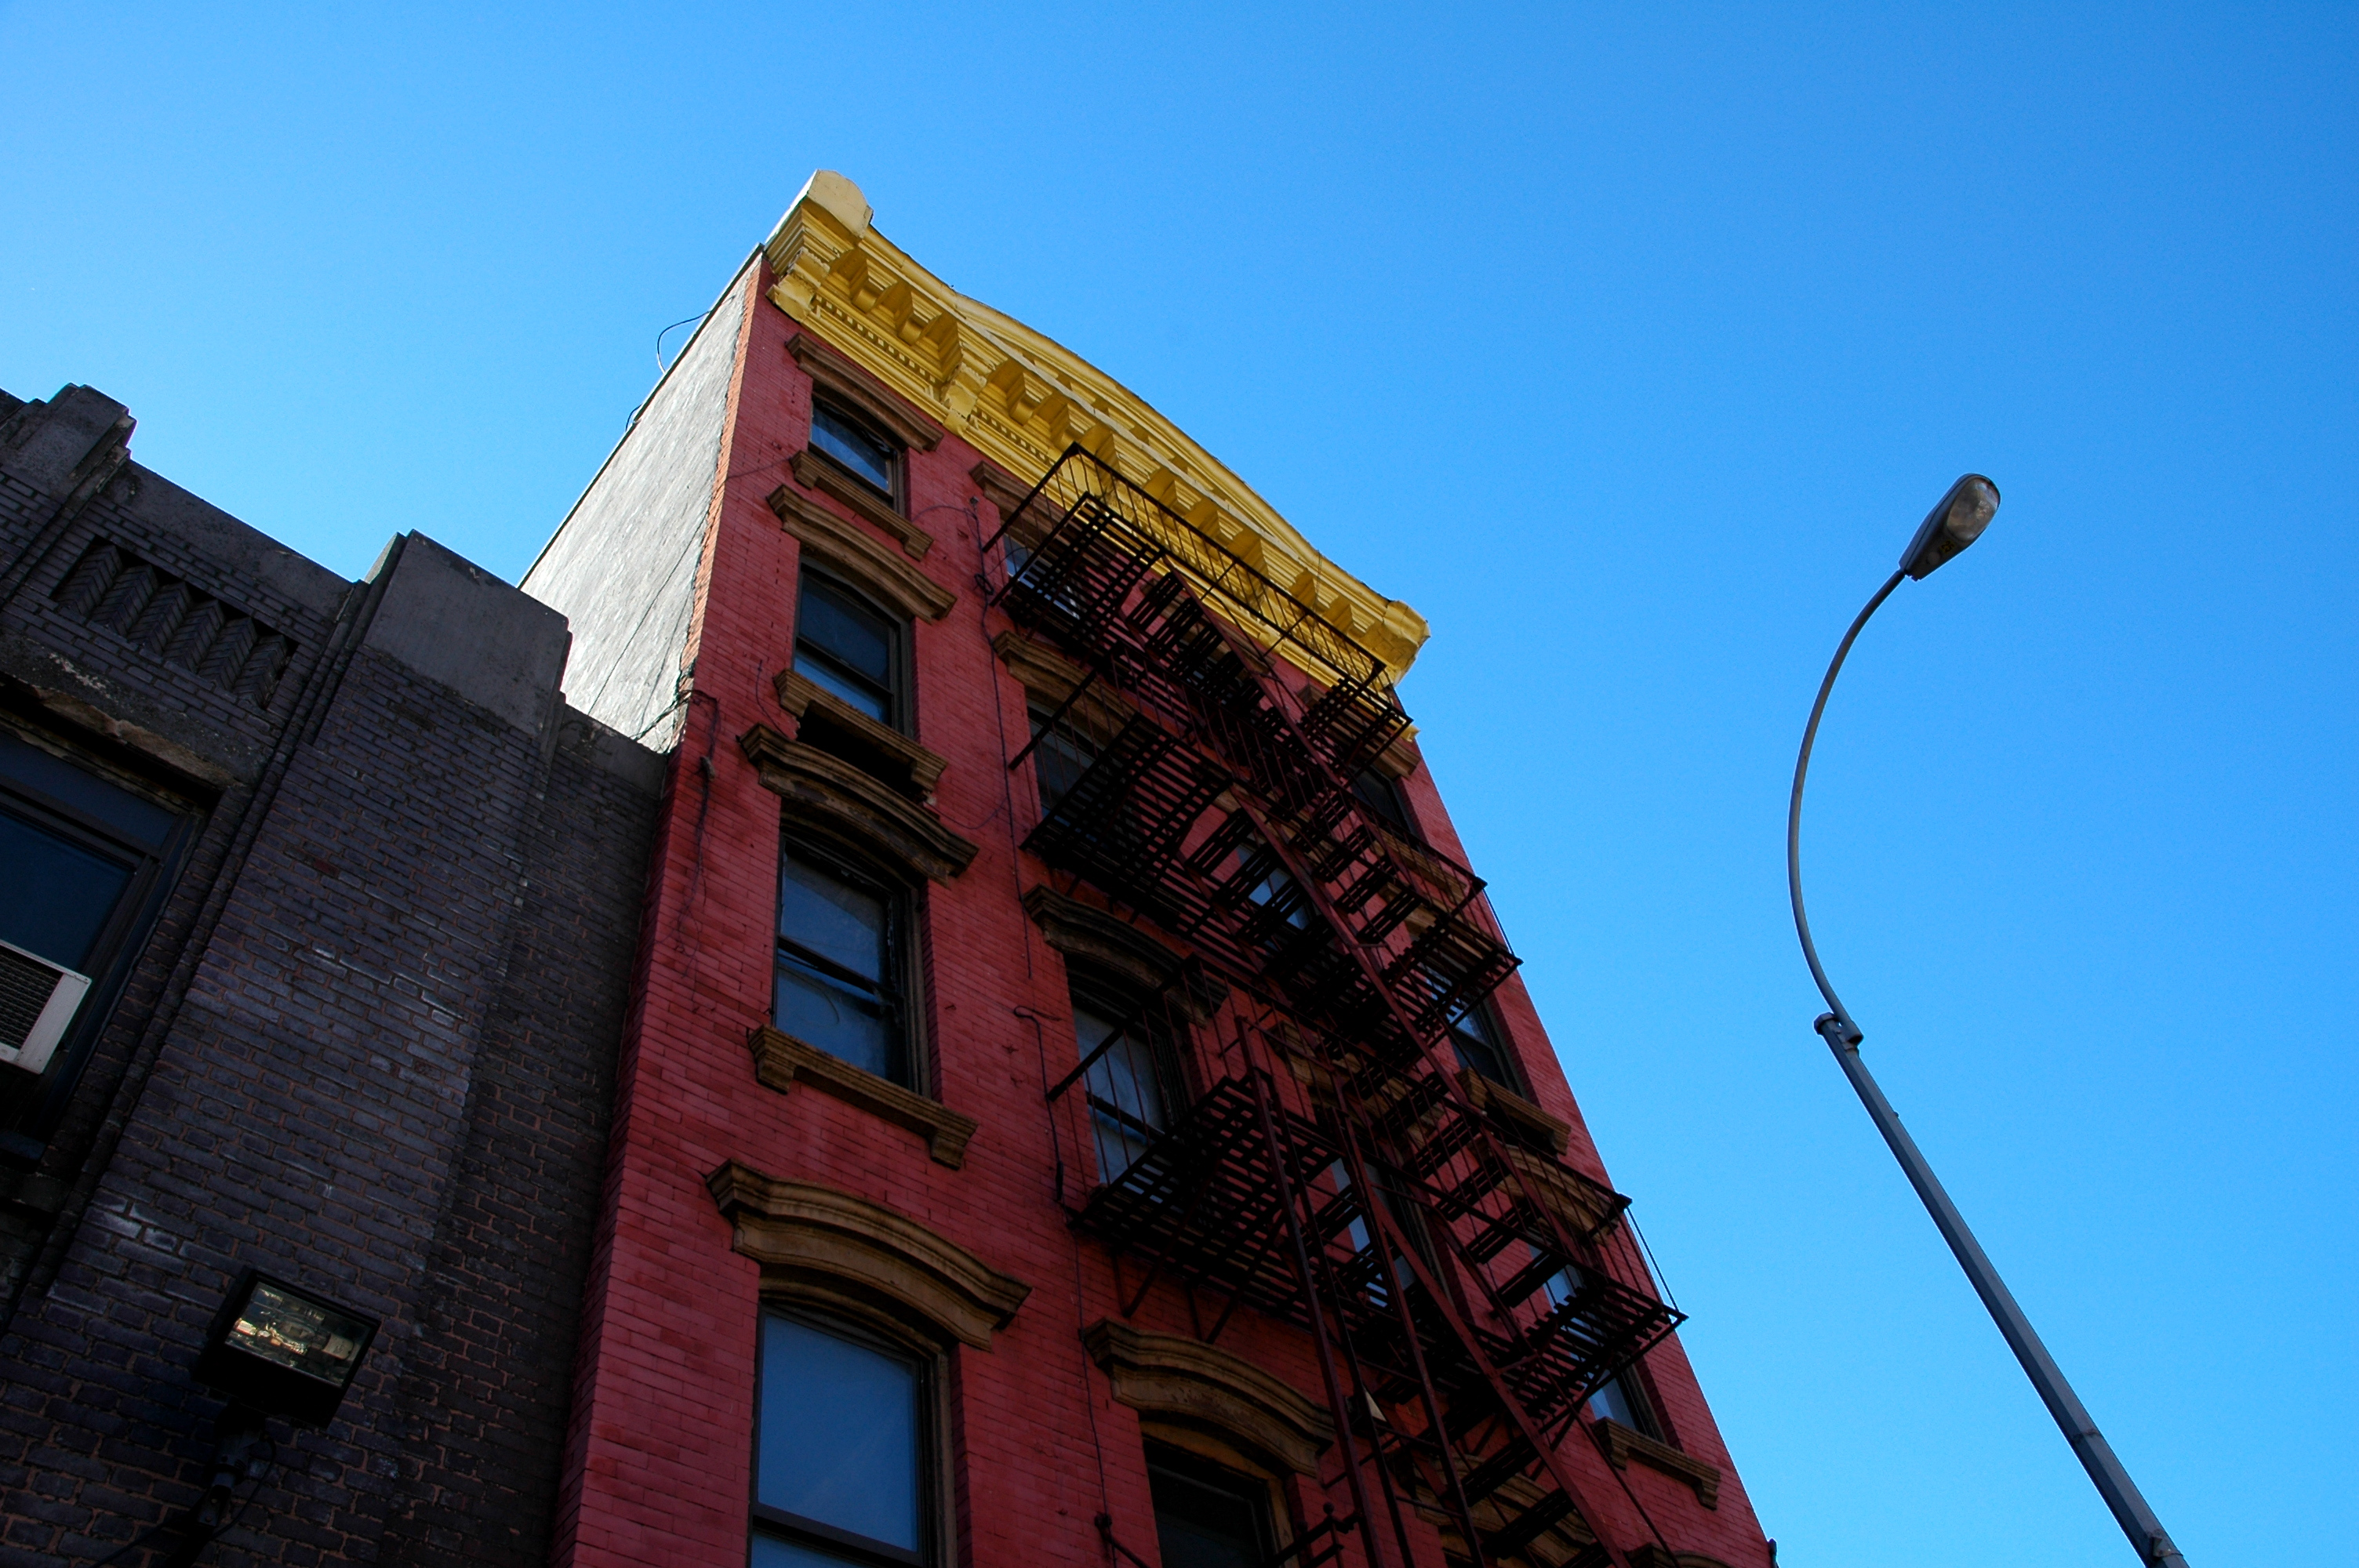 File:Red Building With Yellow Roof In New York City 02 2005